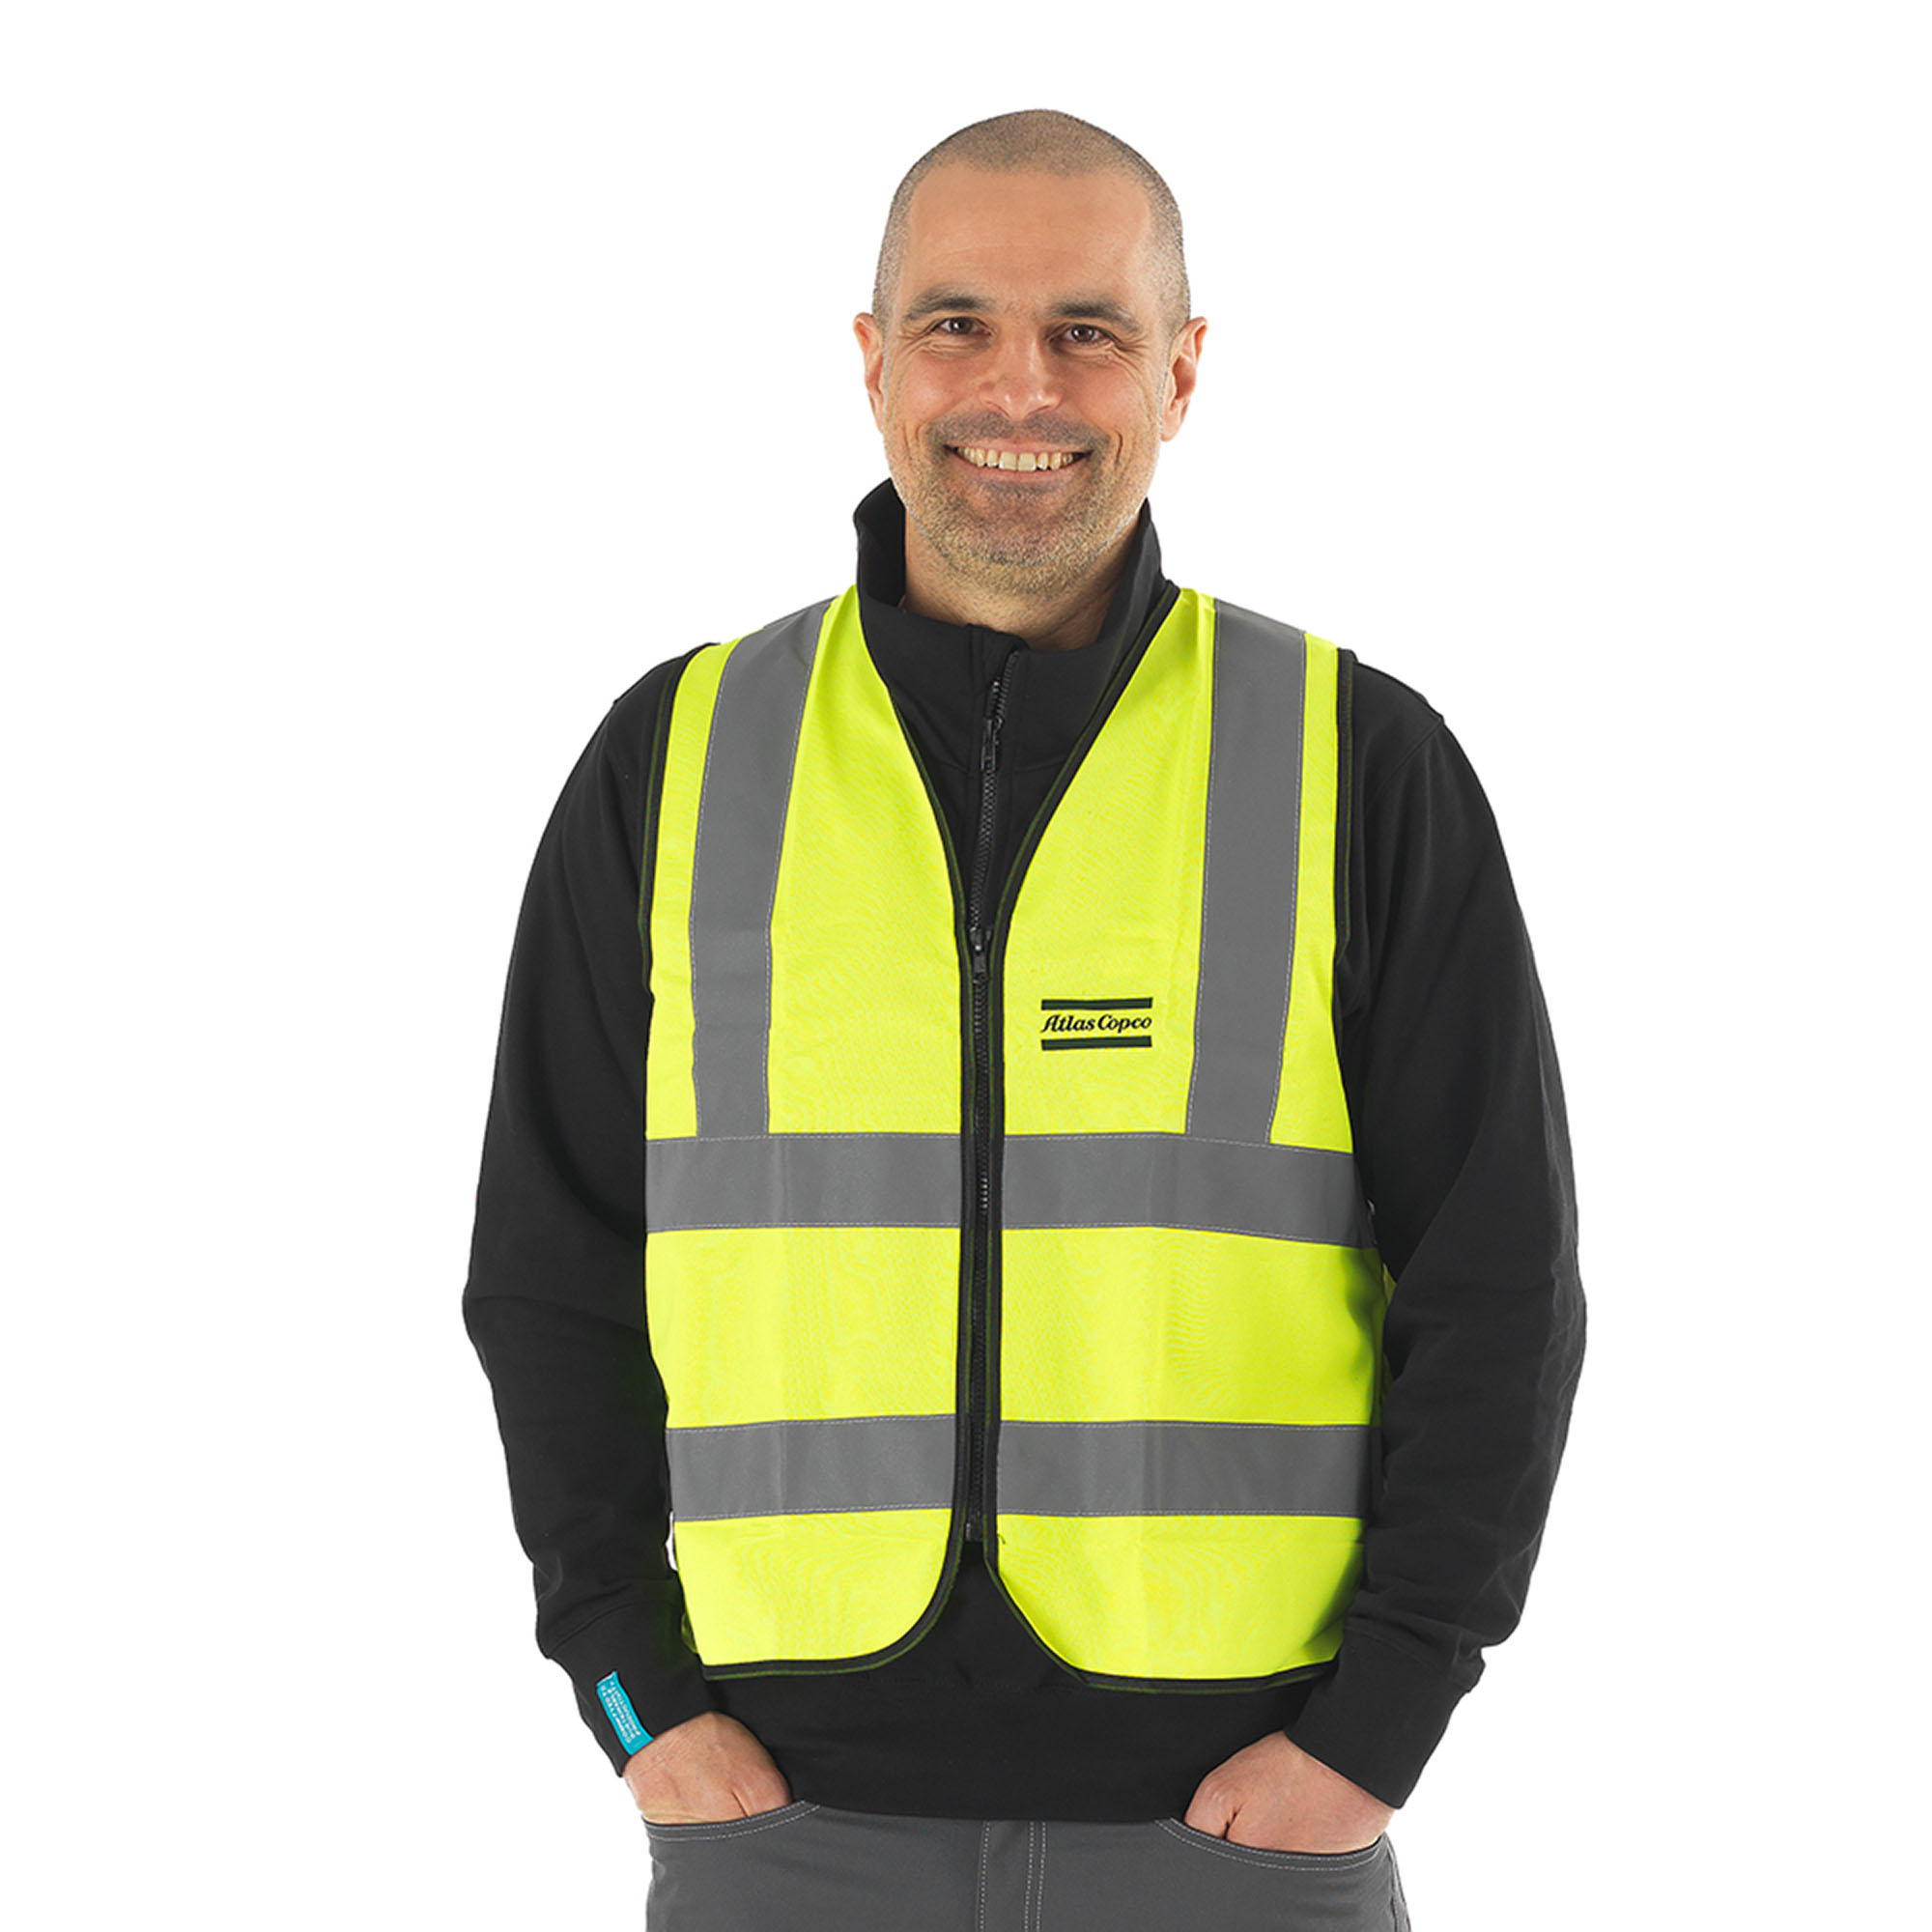 This High-quality safety vest made in fluorescent yellow fabric. With added reflective which provides optimal visibility in critical working conditions. With the fluorescent fabric and reflexes this vest meets visibility standard. This vest meets EN ISO 20471 (S/M), class 2 EN471 EN ISO 20471 (L/XL, 2XL/3XL), class 3 EN471 ANSI/ISEA 107:2010 (S/M ), class 1 level 2 Garments ANSI/ISEA 107:2010 (L/XL, 2XL/3XL ), class 2 Garments